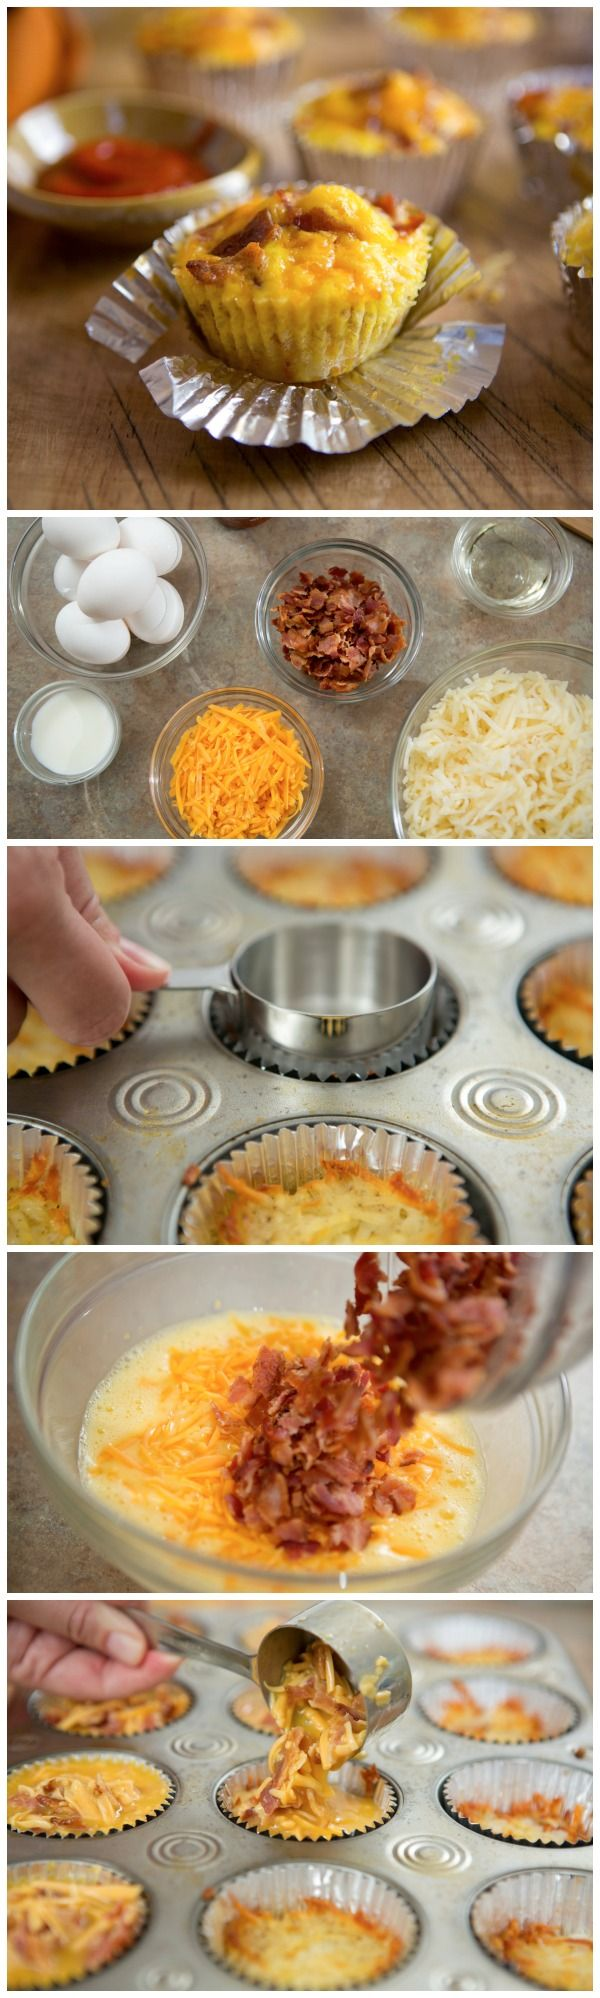 No wonder this is one of Betty's most-Pinned recipes ever! Any time you combine cupcakes and bacon, it's bound to be a winning recipe. These savory cupcakes are filled with hash browns, cheese, crispy bacon and spicy Sriracha sauce for an extra kick. Looking for a shortcut? Cook the bacon and shred the cheese the night before, then assemble and bake in the morning.